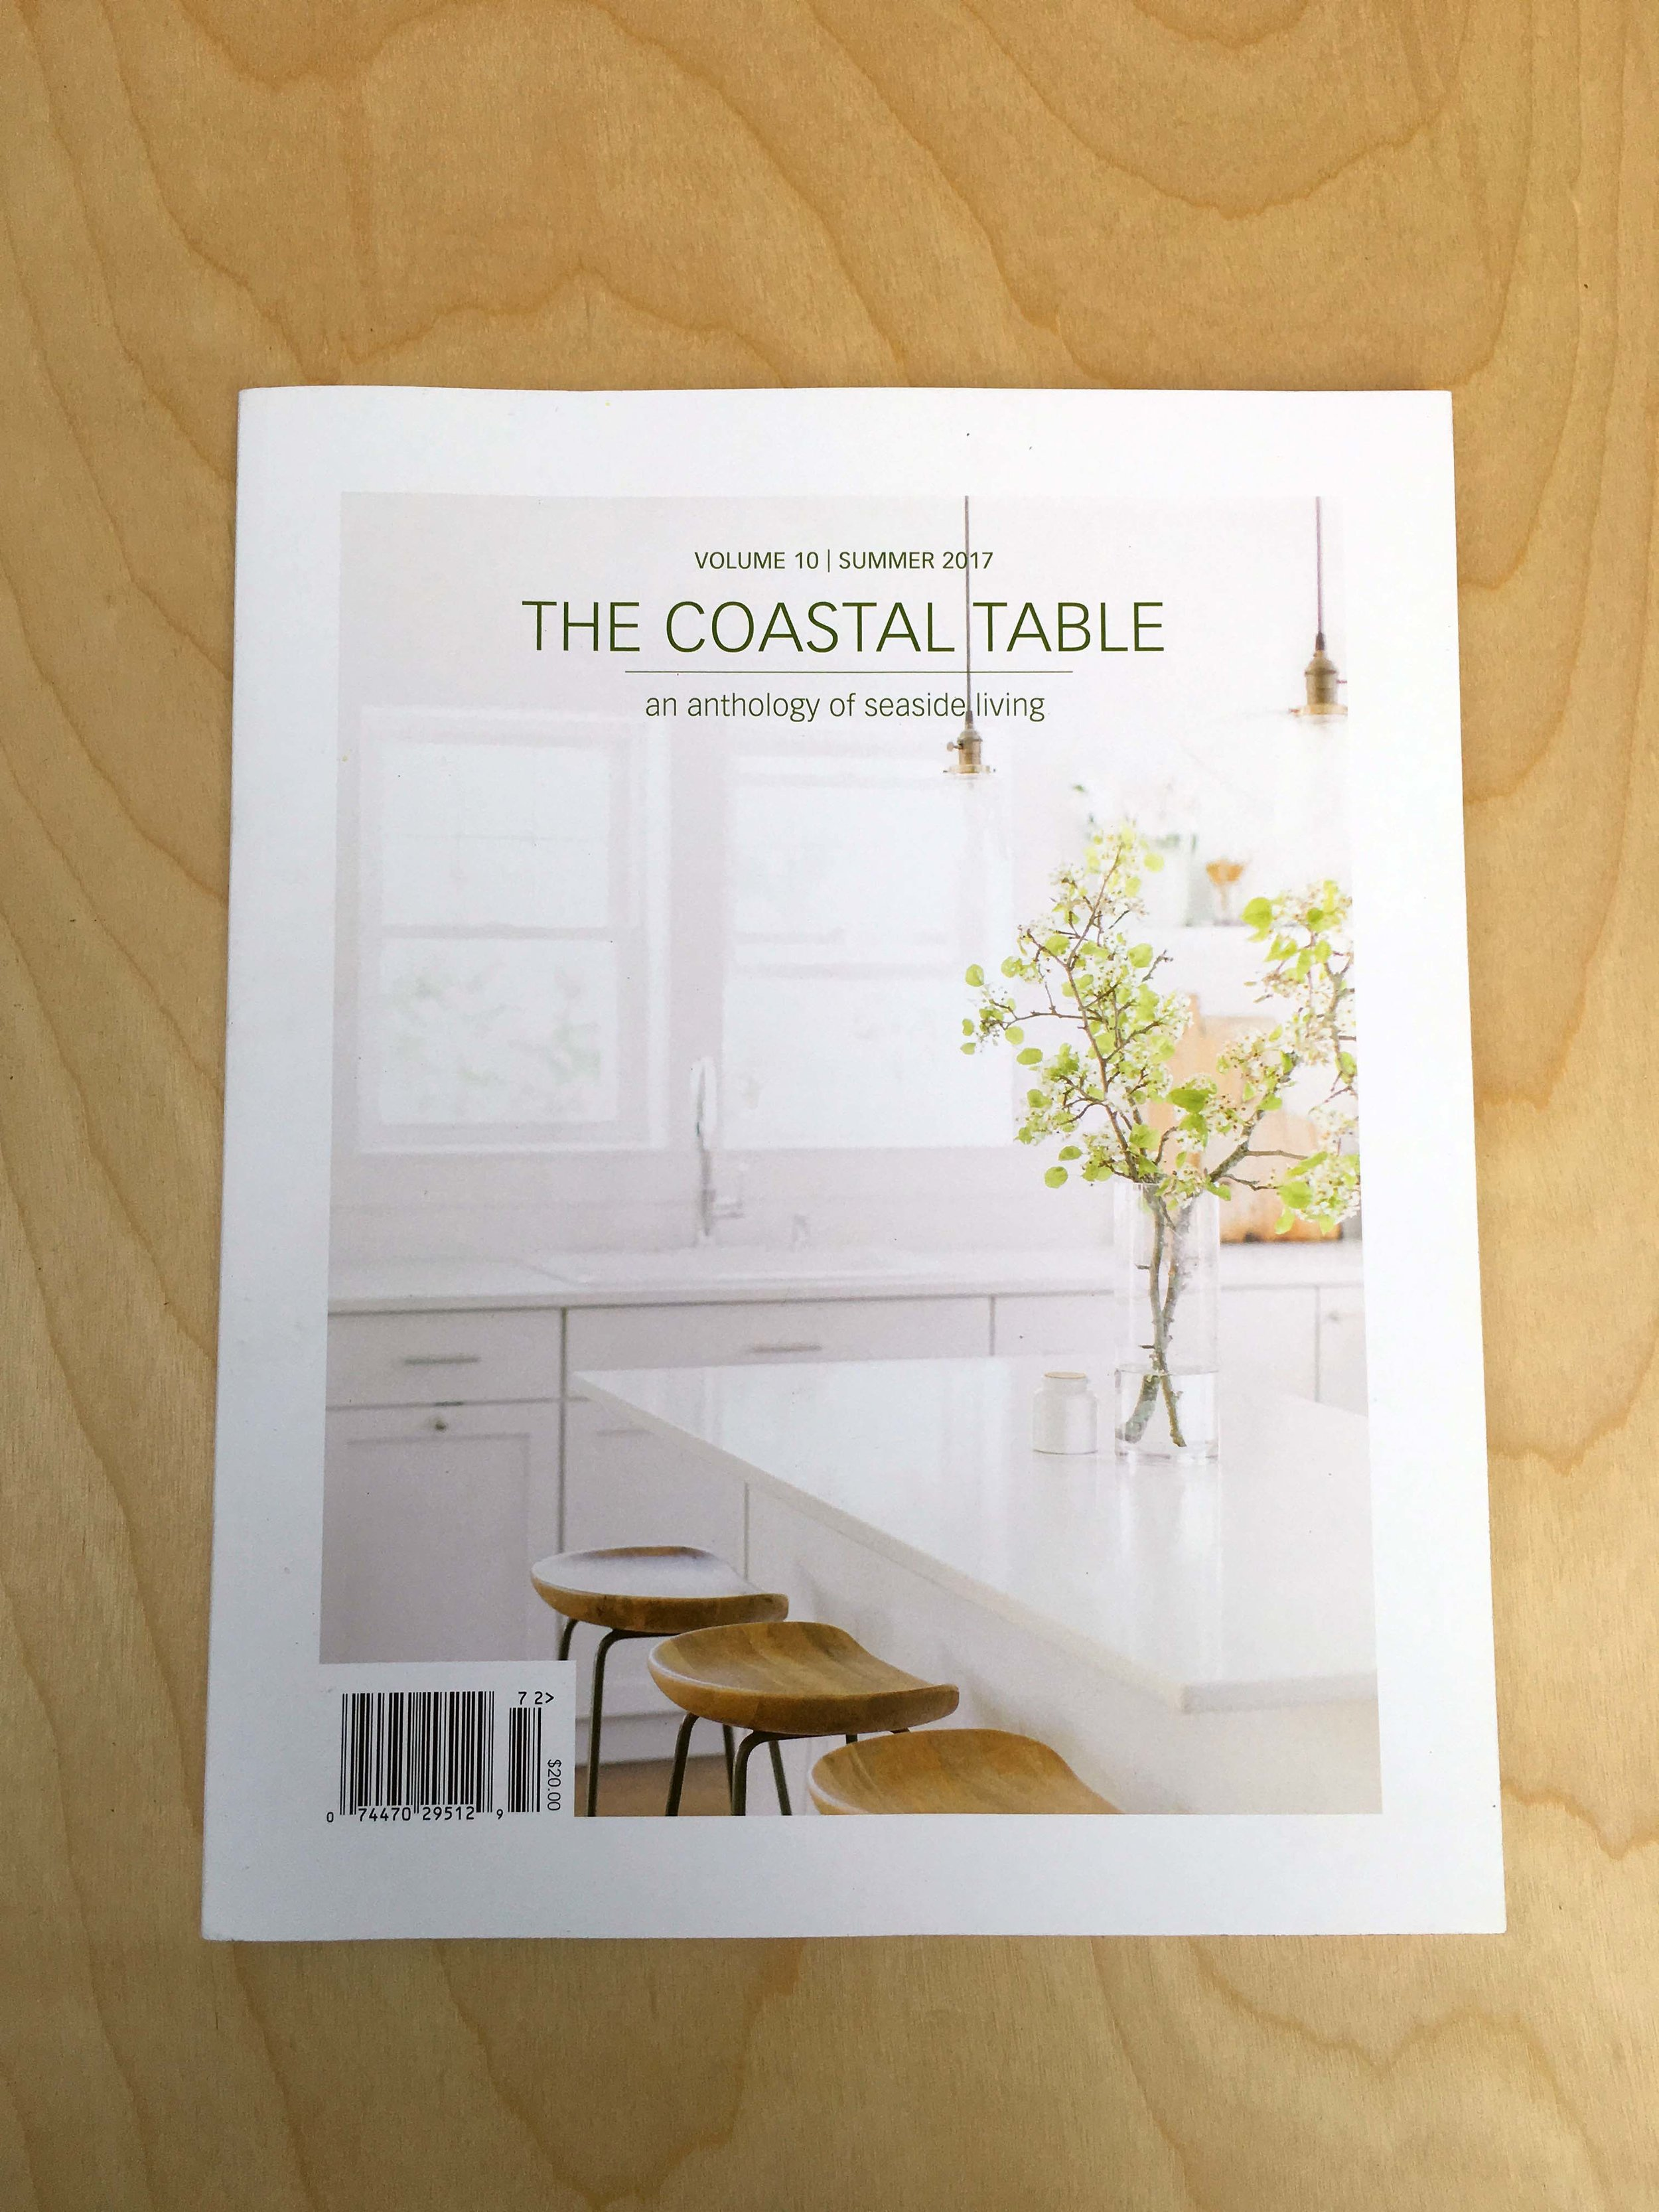 THE COASTAL TABLE SUMMER 2017